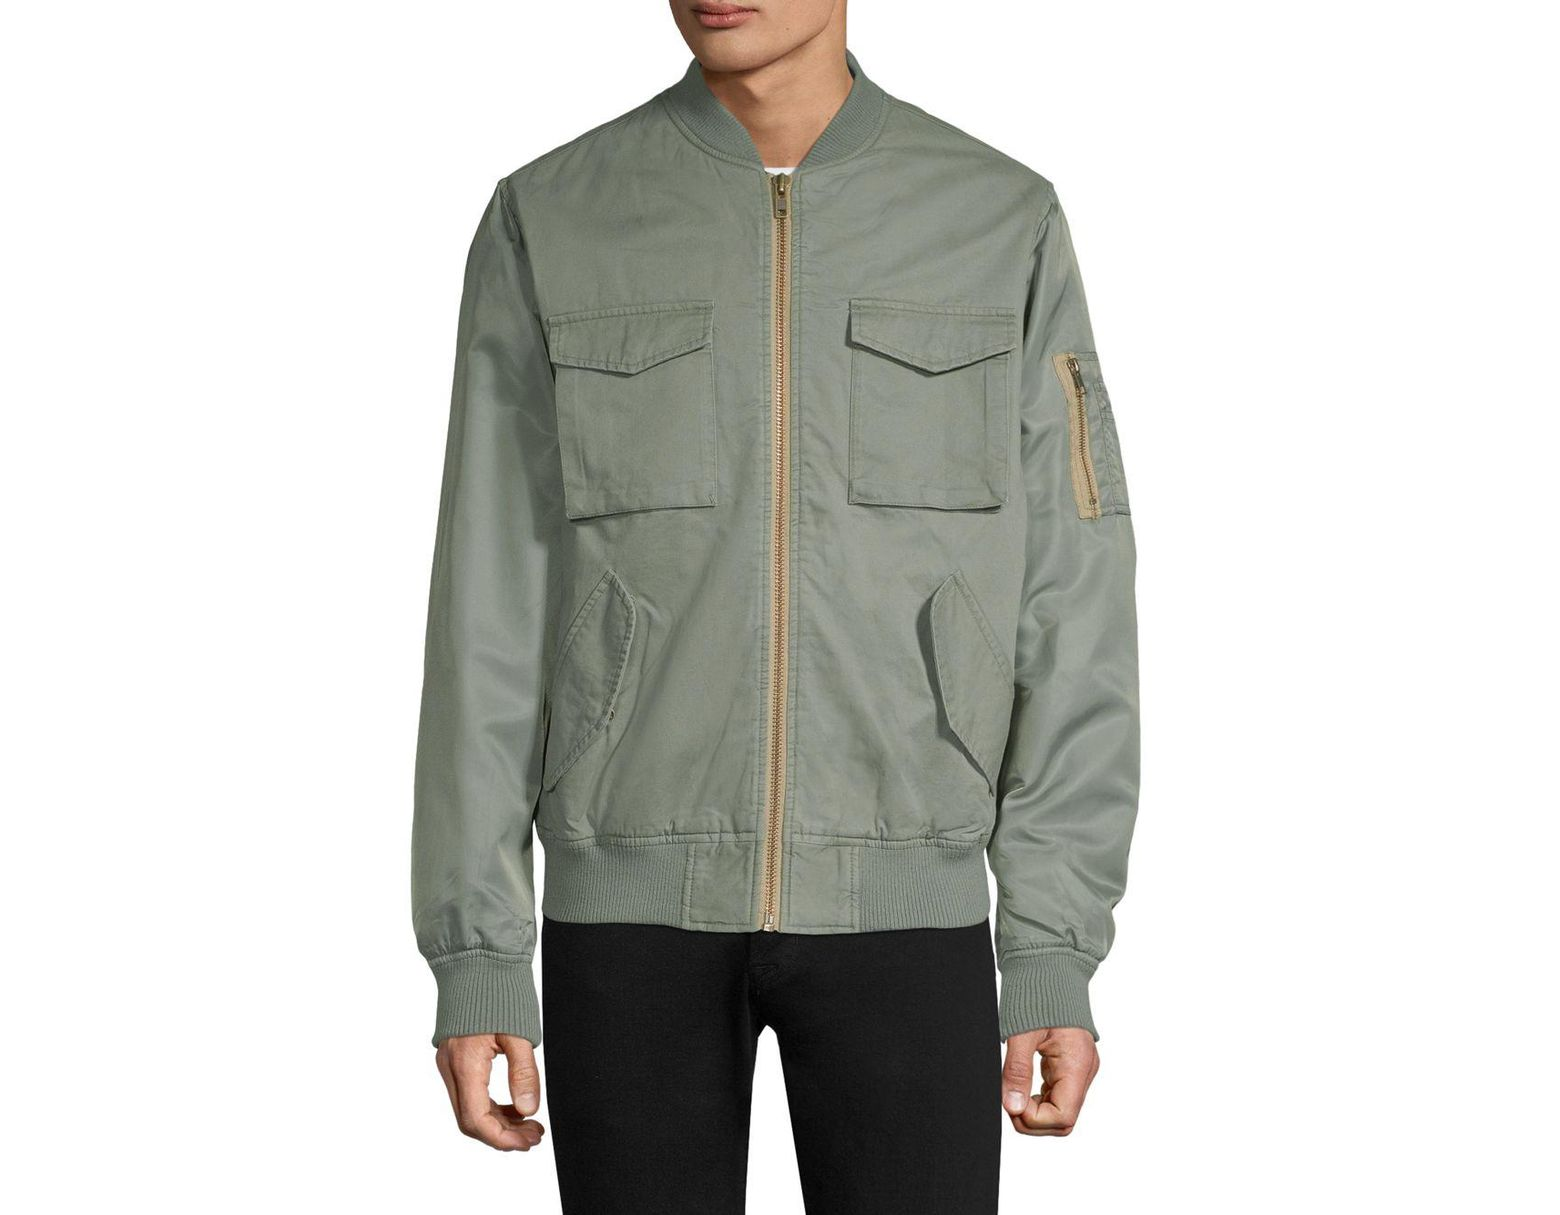 dd2c761b85268 Wesc Contrast Two-tone Bomber Jacket in Green for Men - Lyst